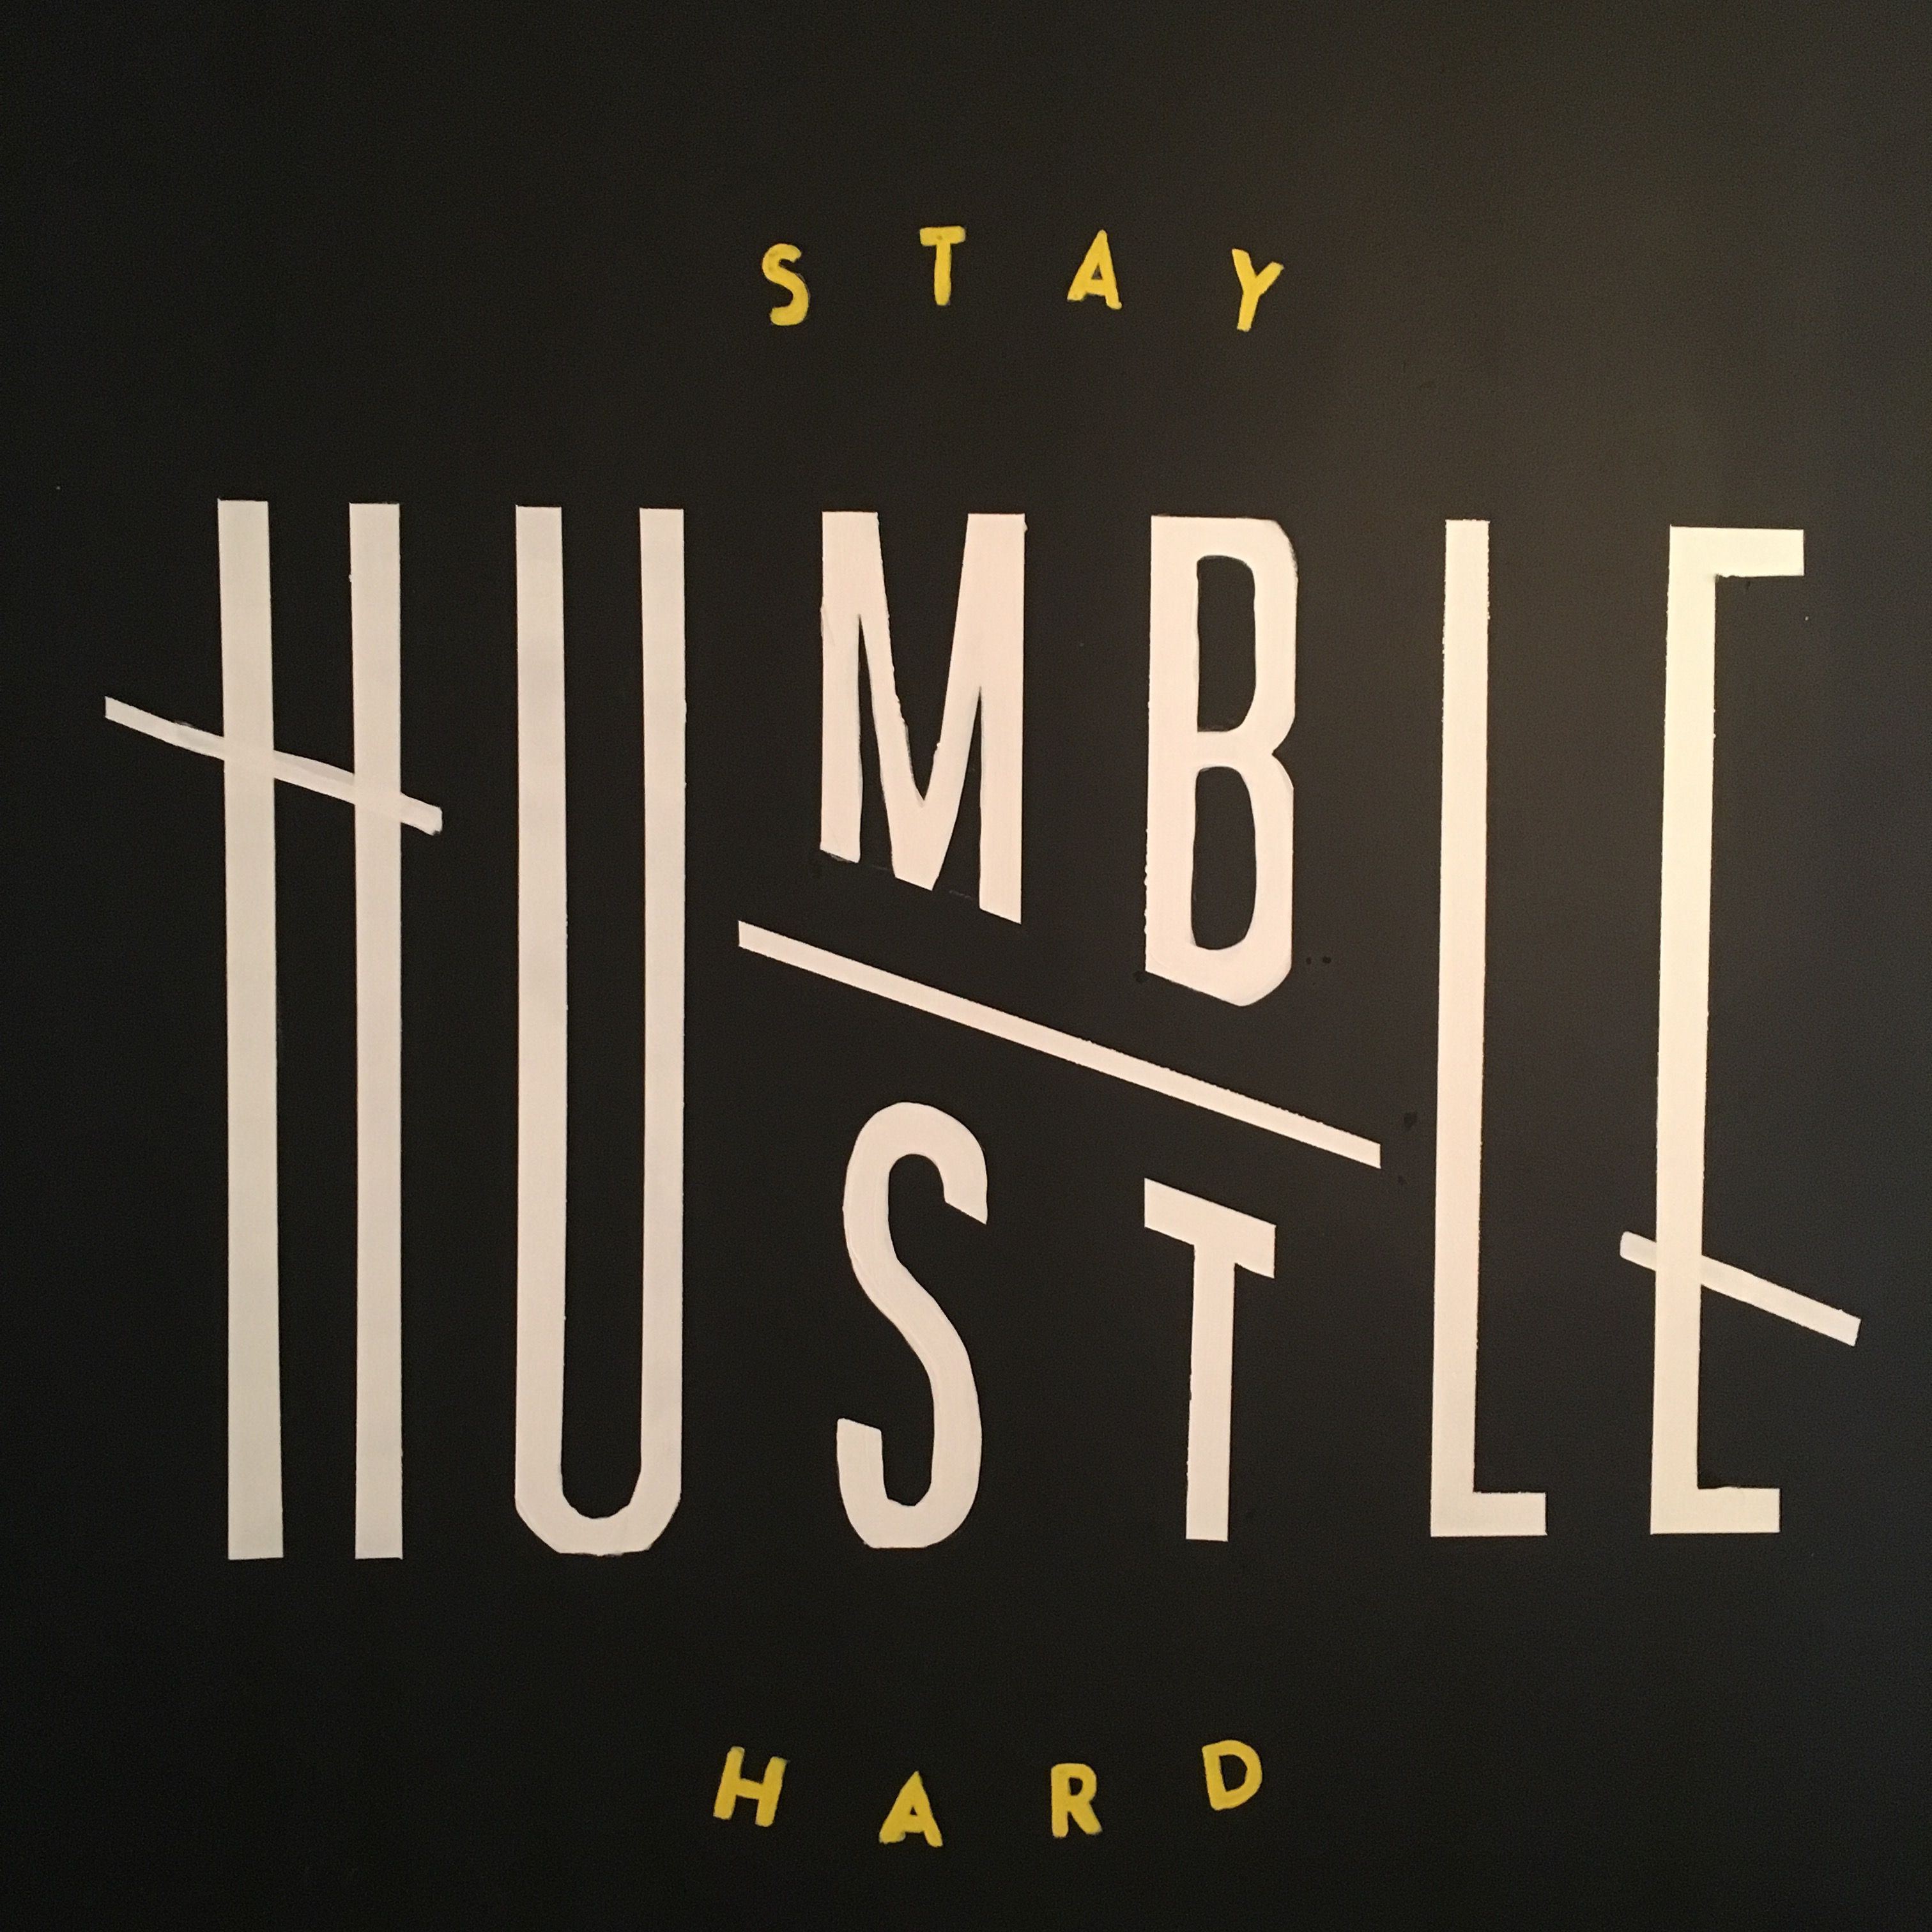 My Friends: Stay Humble, Hustle Hard. (Found At Kowork In